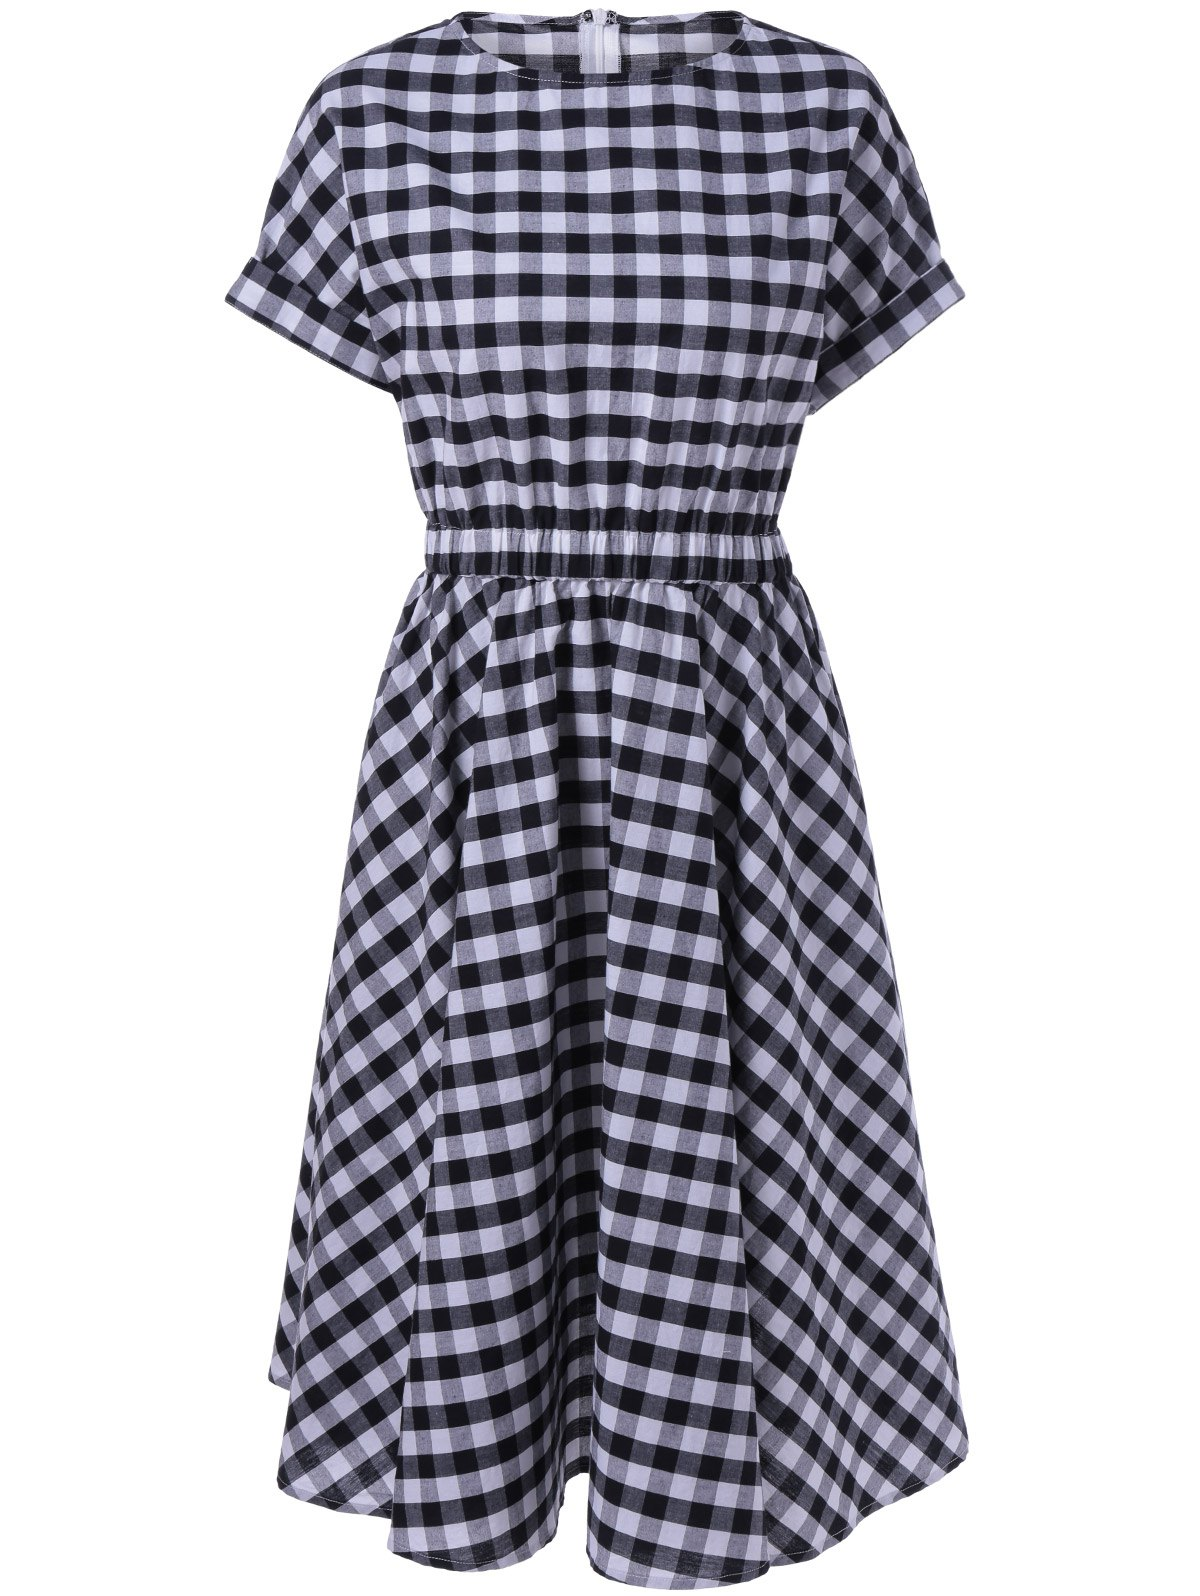 Casual Plaid Print Fit and Flare Dress